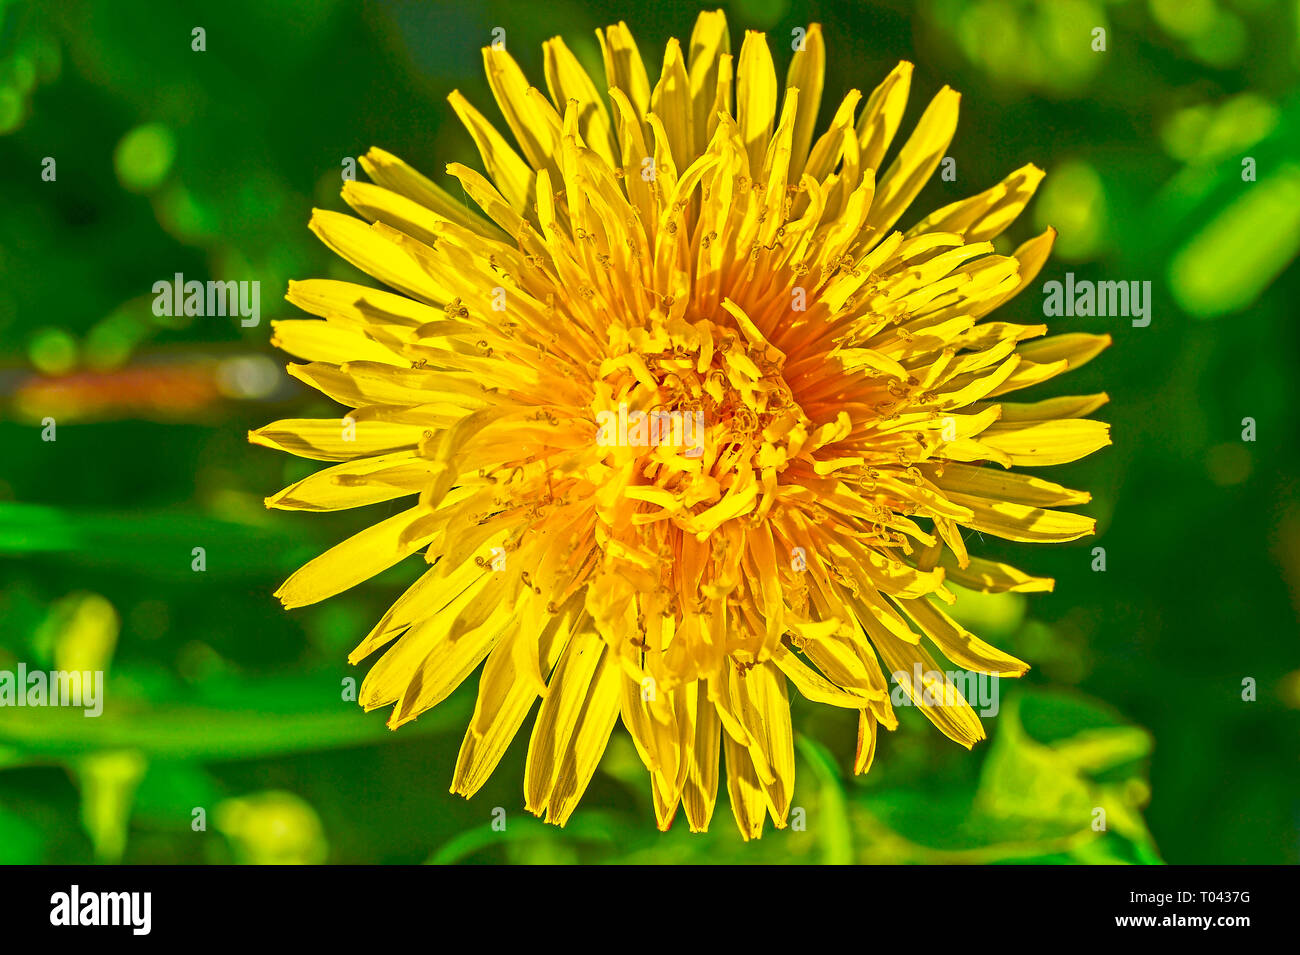 Yellow dandelion flower close up by day in bright sunlight. Background. - Stock Image